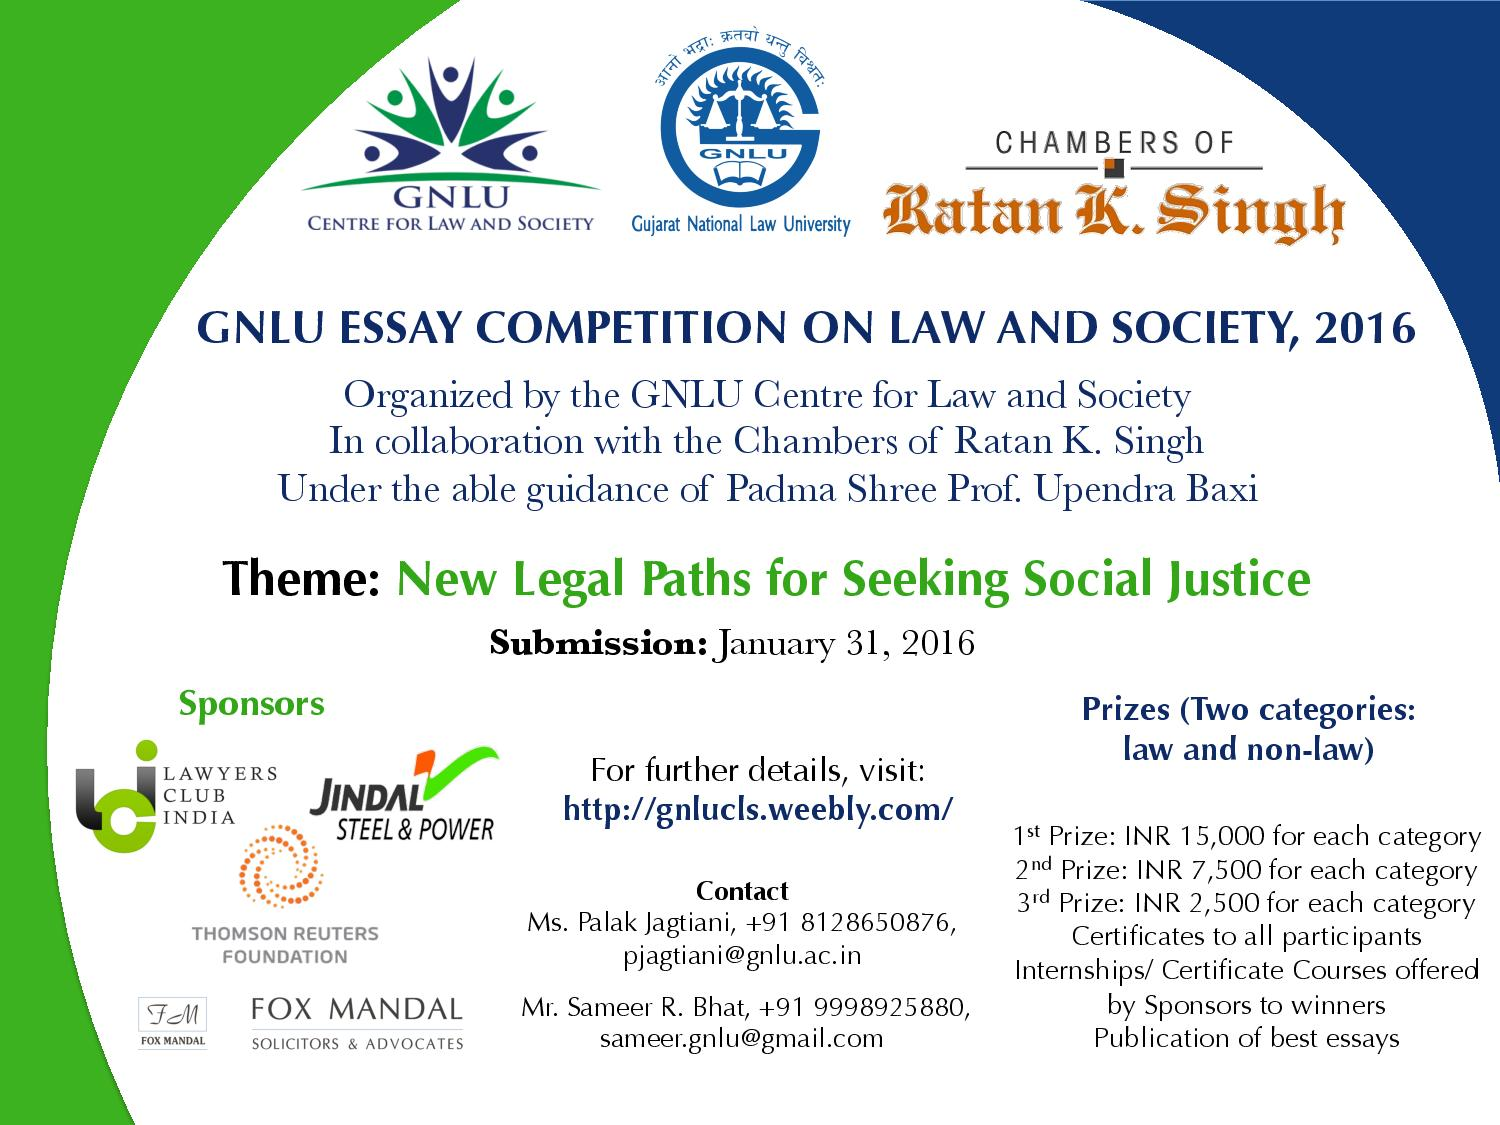 essay competition on law and society 2016 for further details click here gnlu essay competition